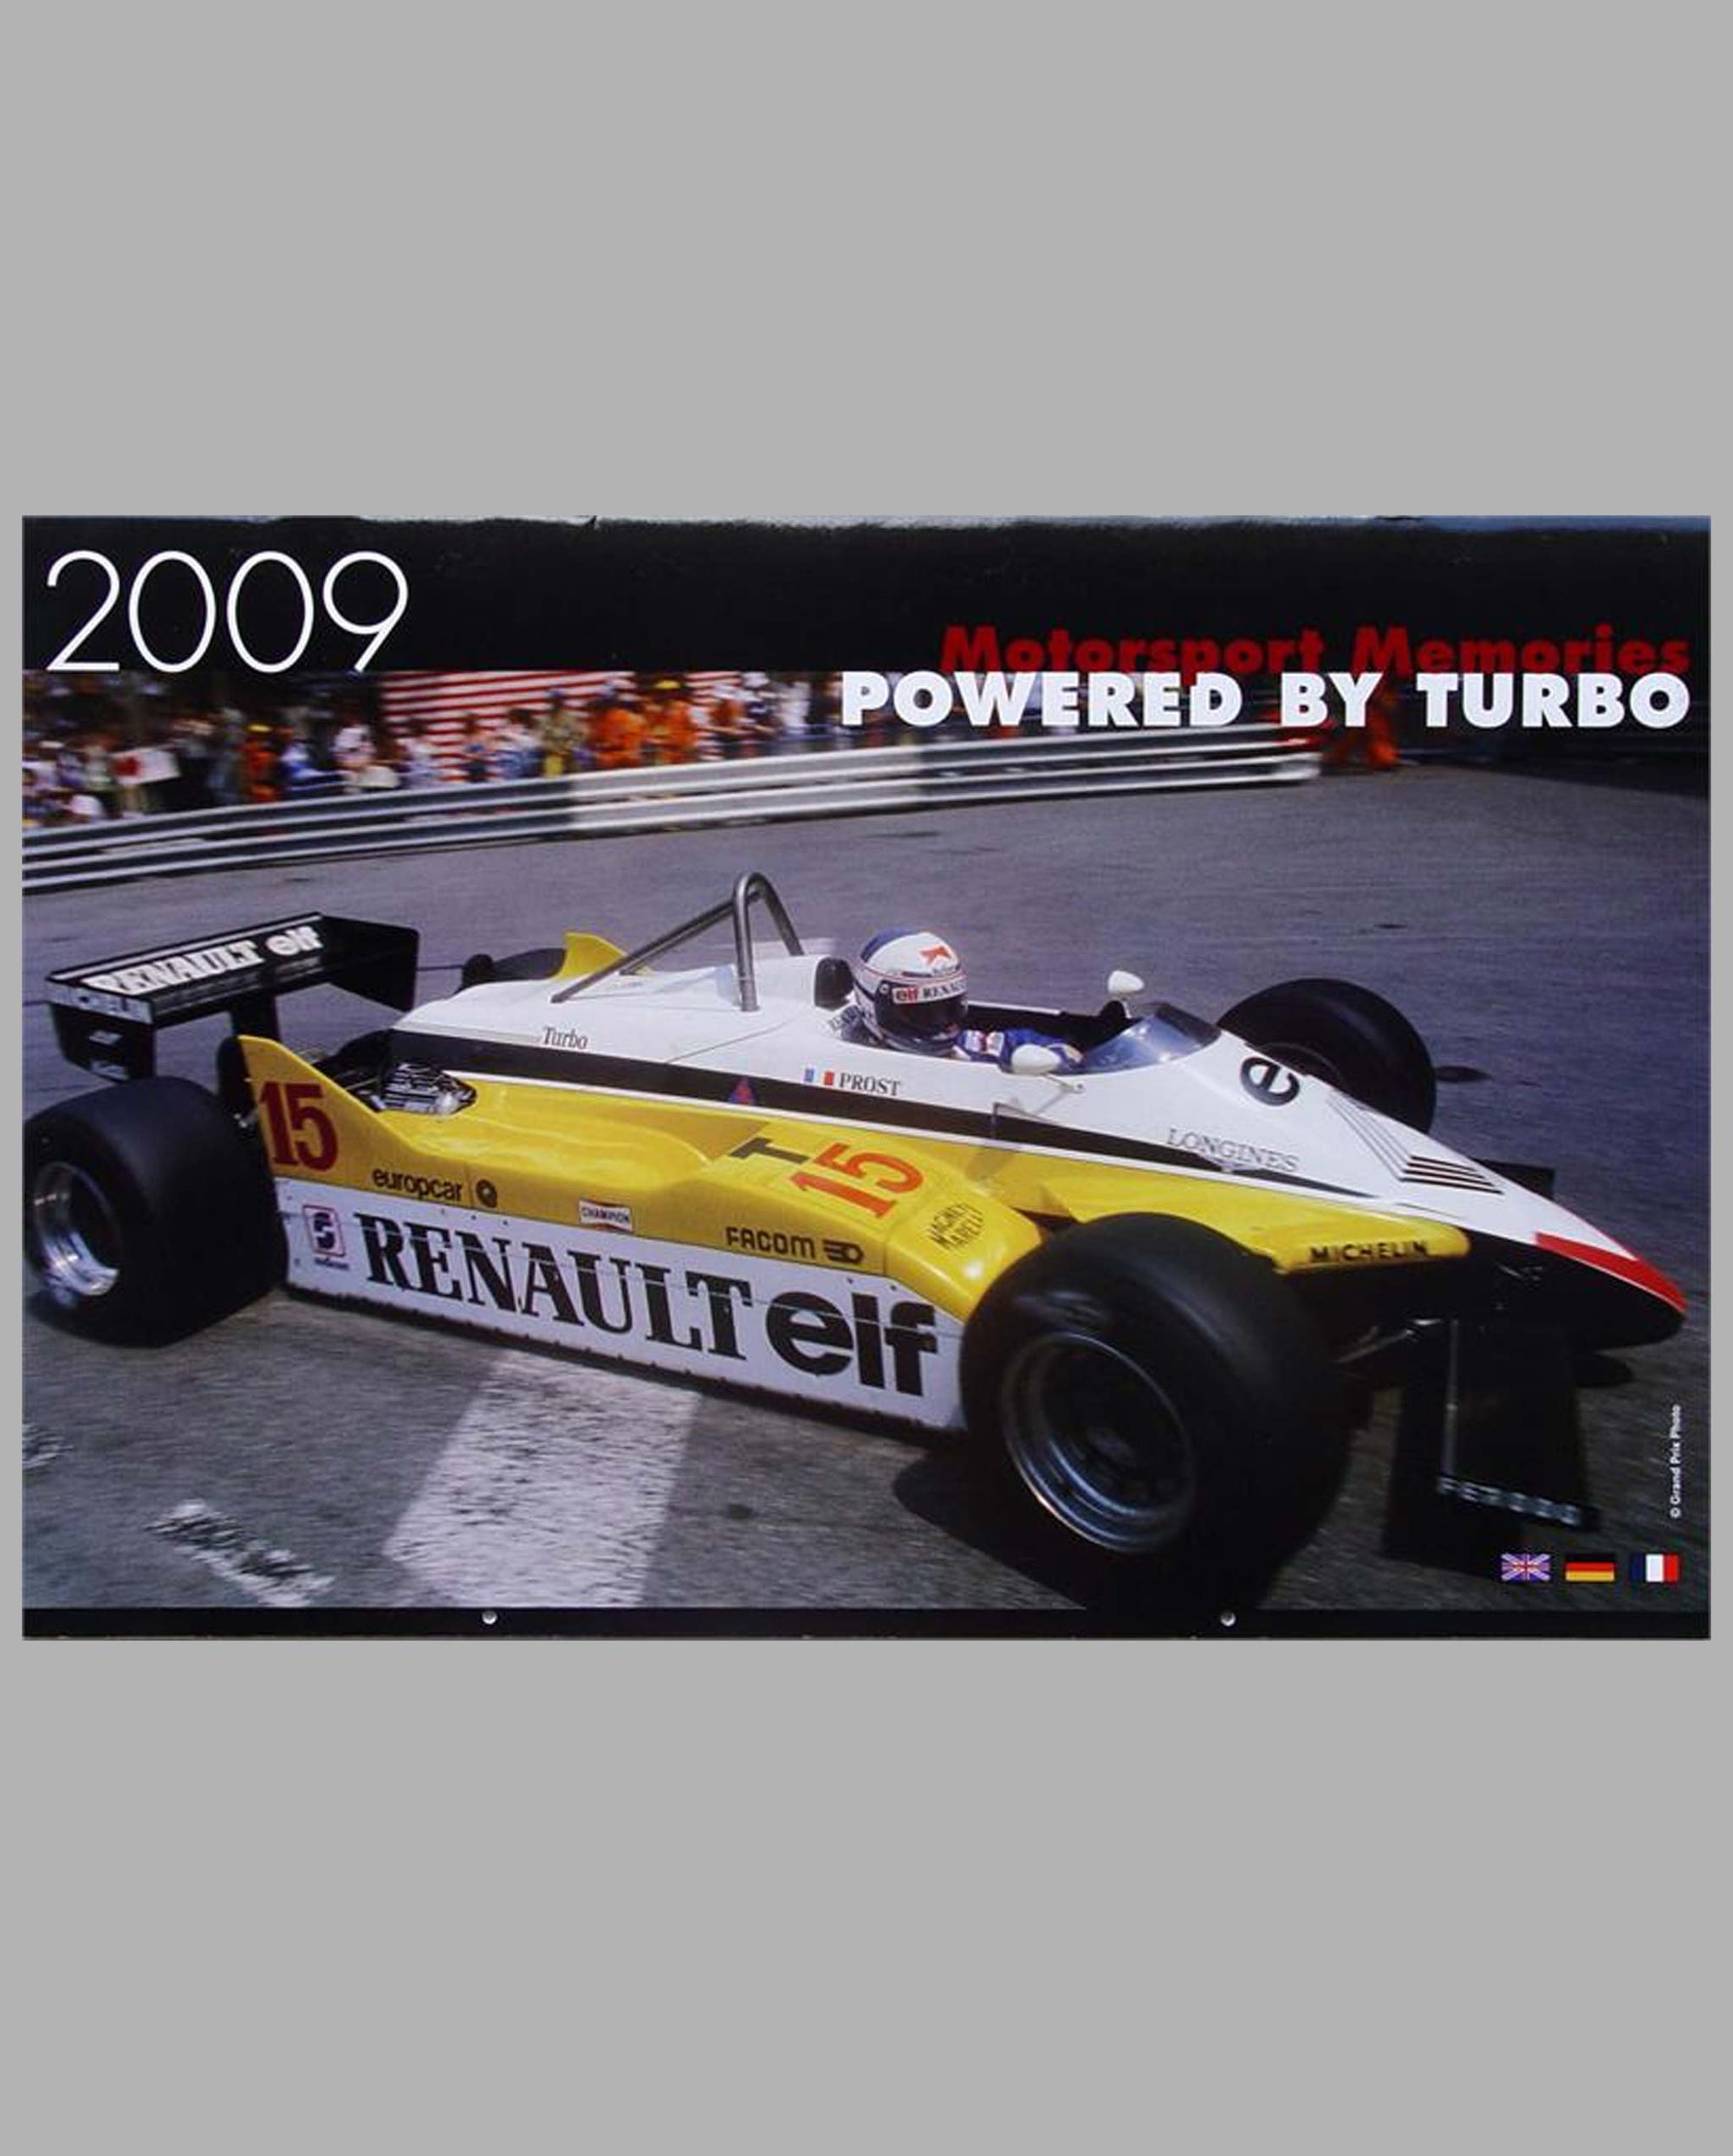 Classic Grand Prix Calendar for 2009